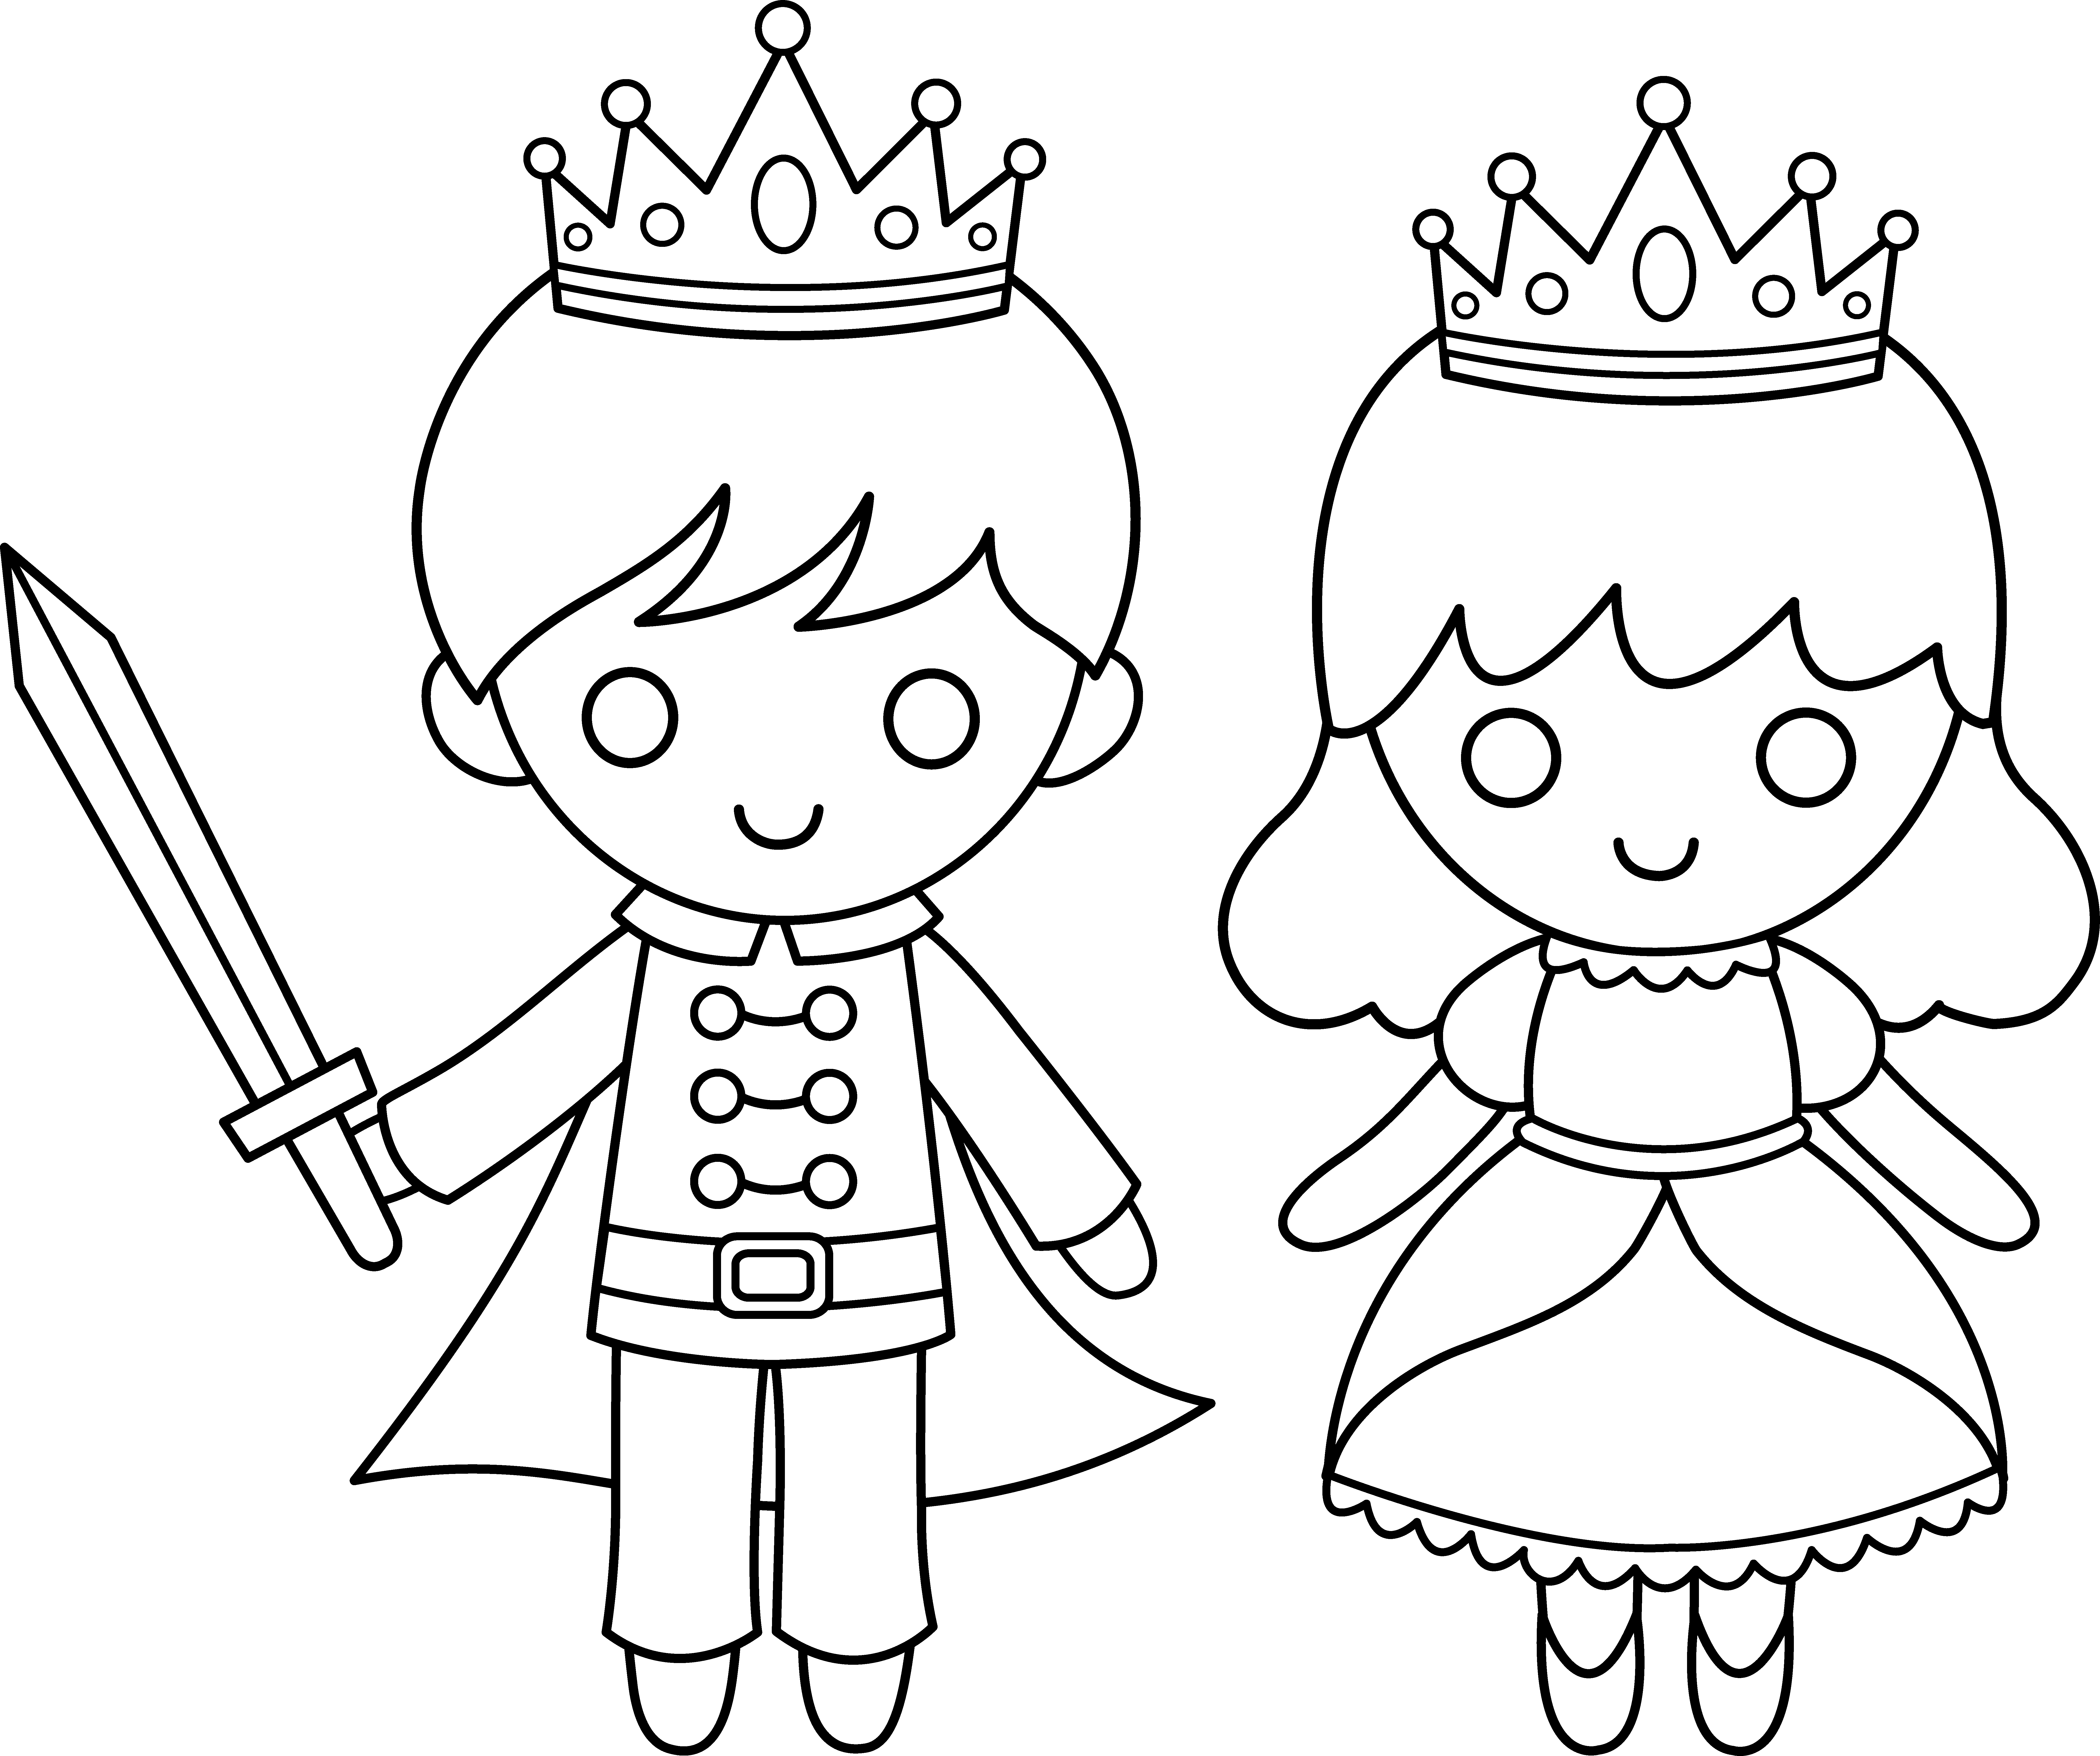 Prince and Princess Line Art Princess coloring pages